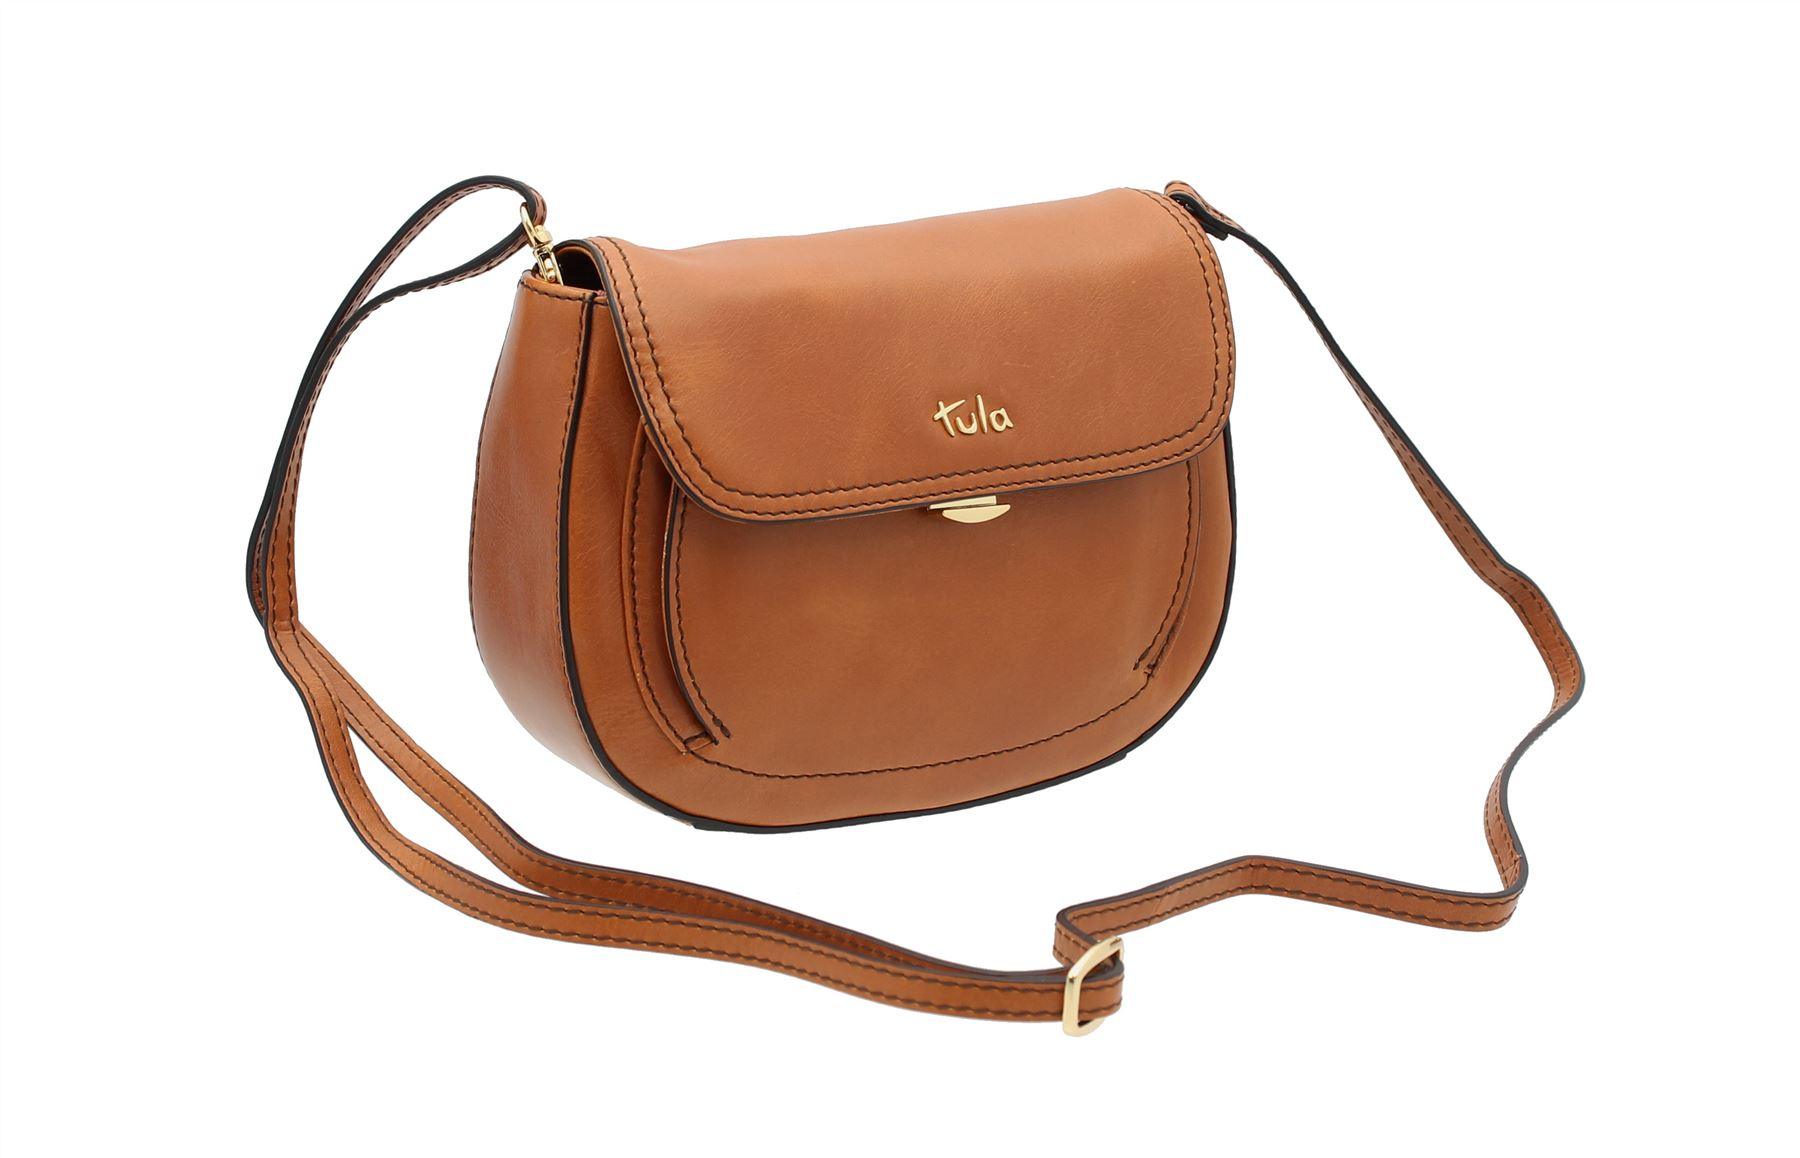 78c41eac4e Tula BELLA Collection Small Leather Shoulder   Cross Body Bag 8152 ...